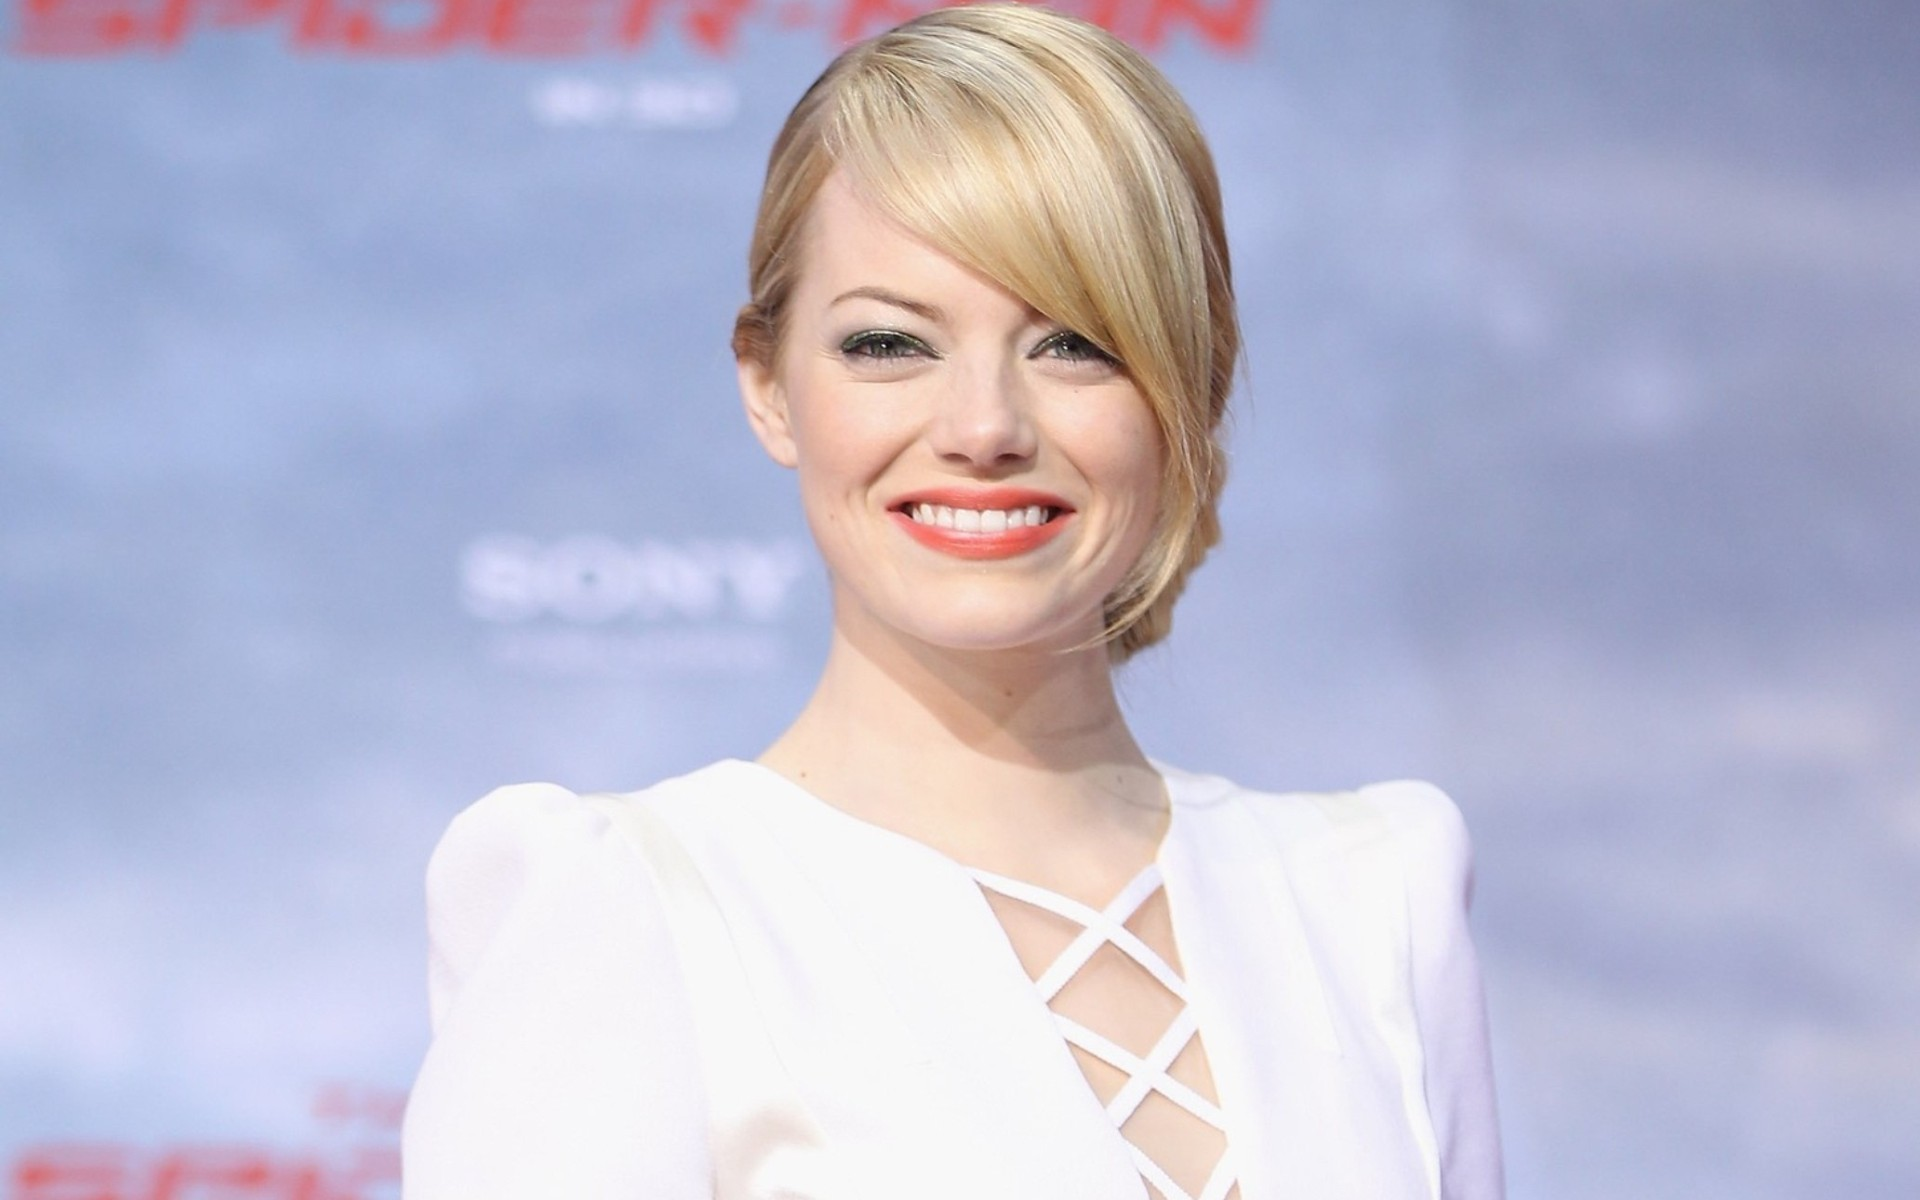 emma stone hd wallpapers Gallery